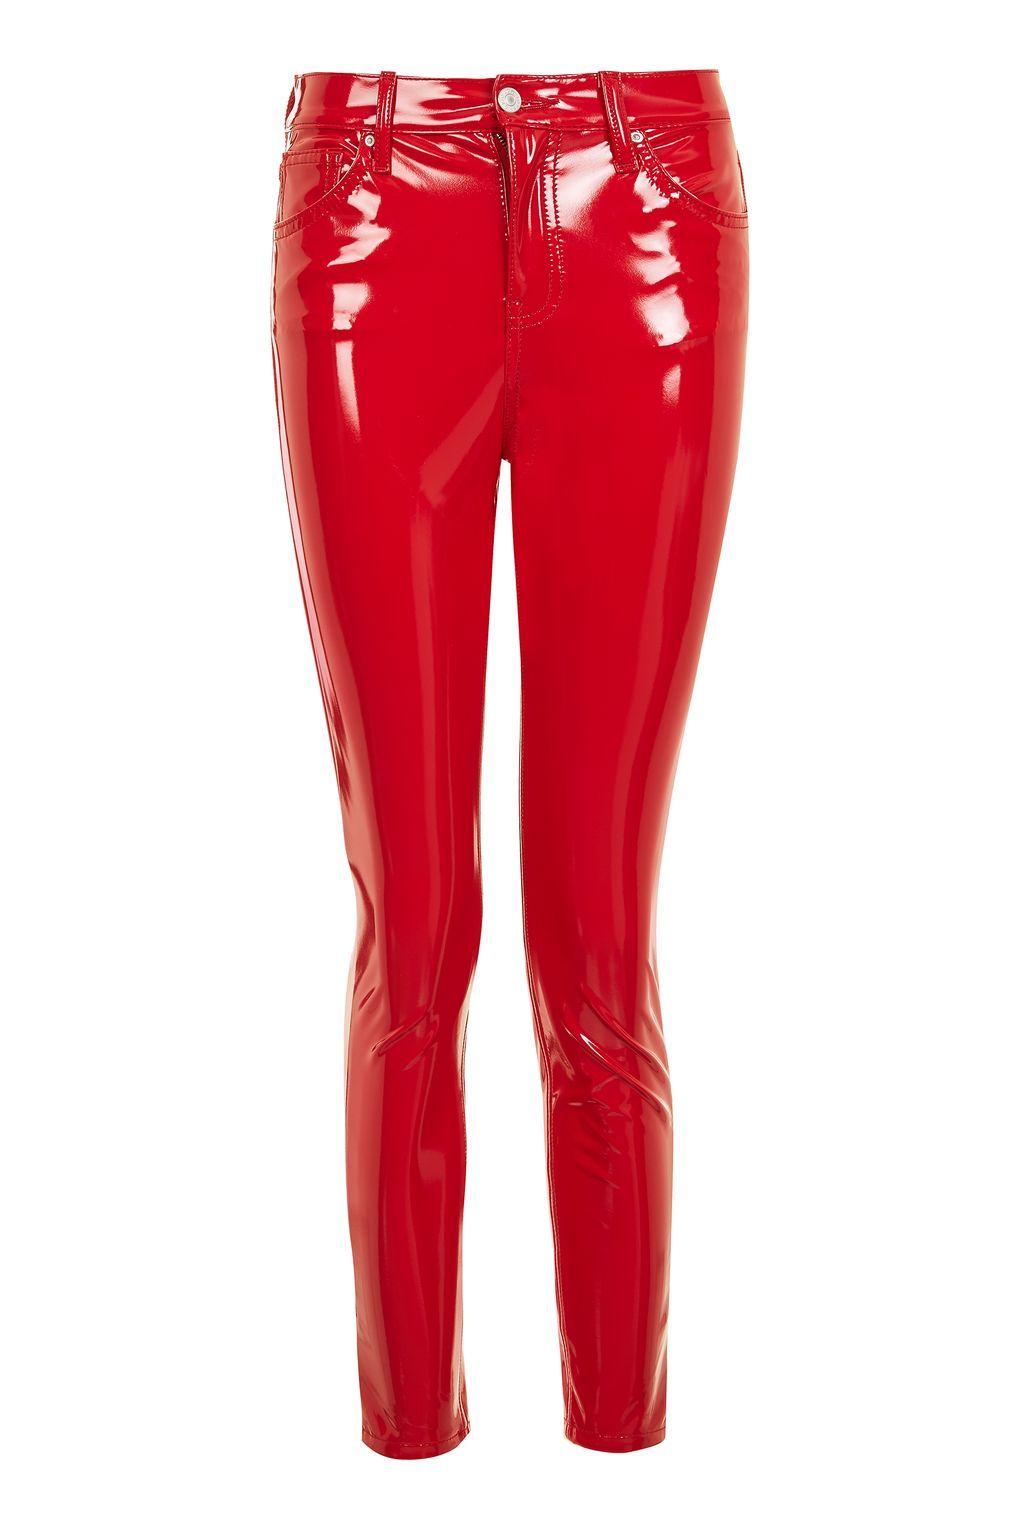 a97fcdec MOTO Red Vinyl Jamie Jeans in 2019 | Clothes | Red skinny jeans ...